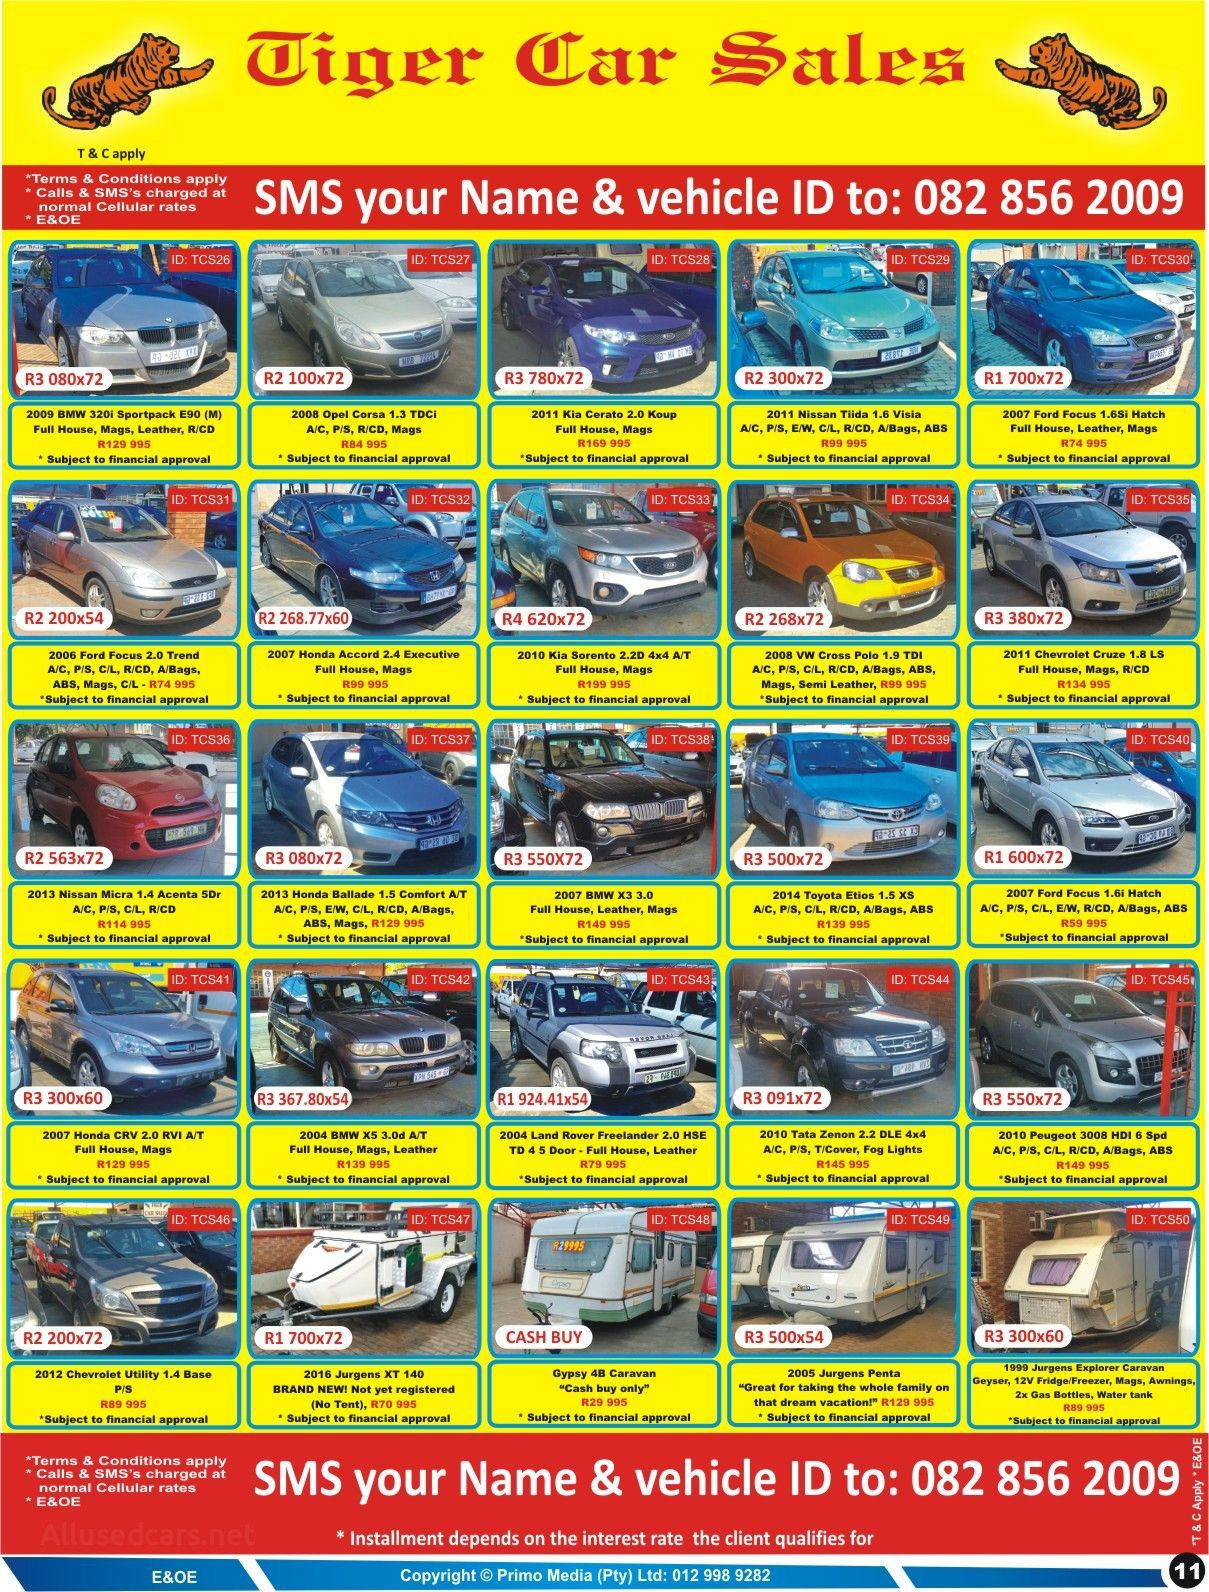 Used Cars for Sale 0 Apr Finance Elegant Best Auto Sales Luxury today is Chooseday so Dont Miss Out